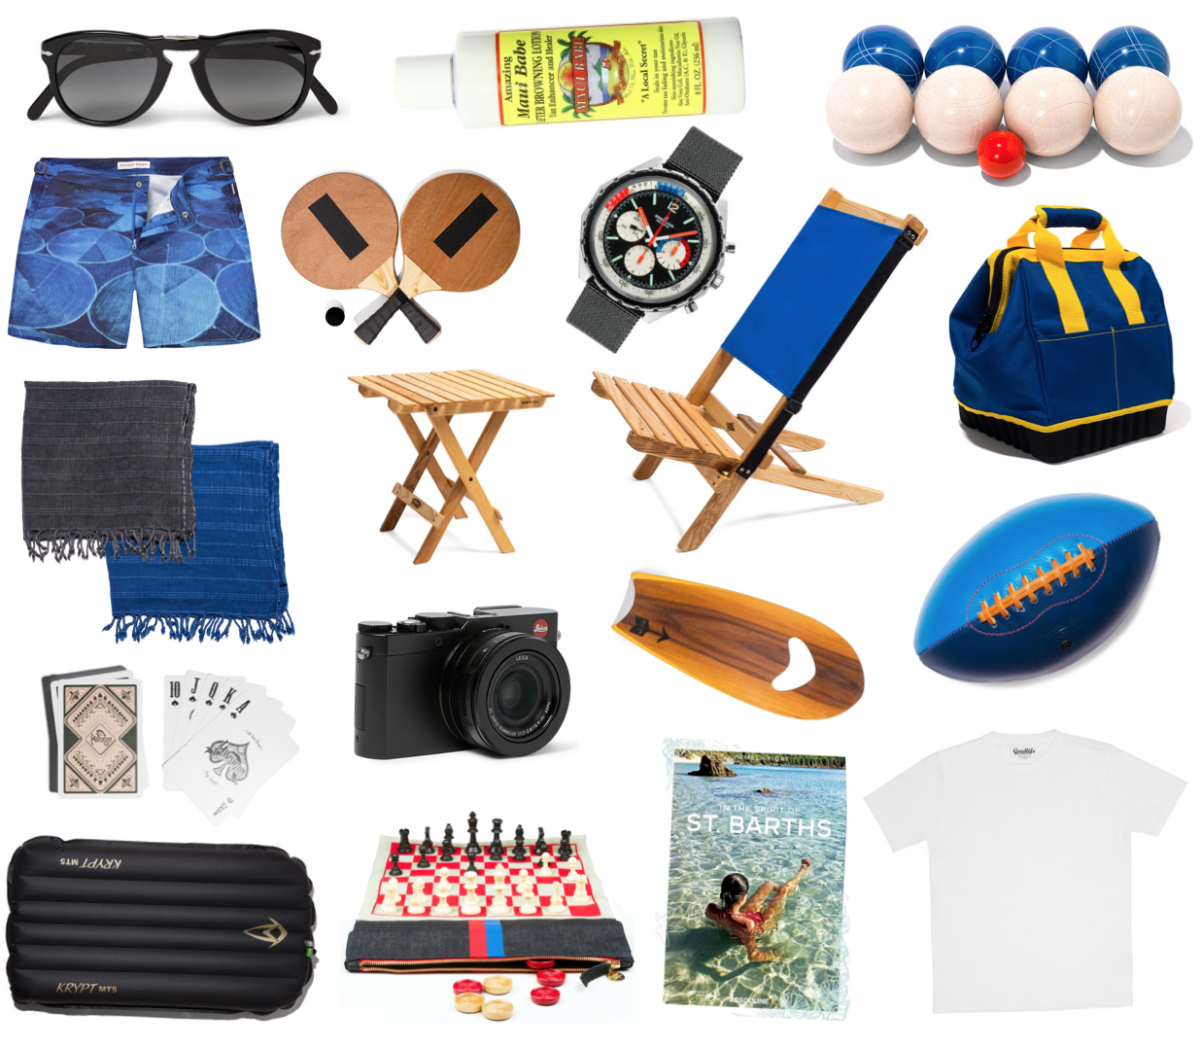 18 Things You Need For The Perfect Beach Day Airows